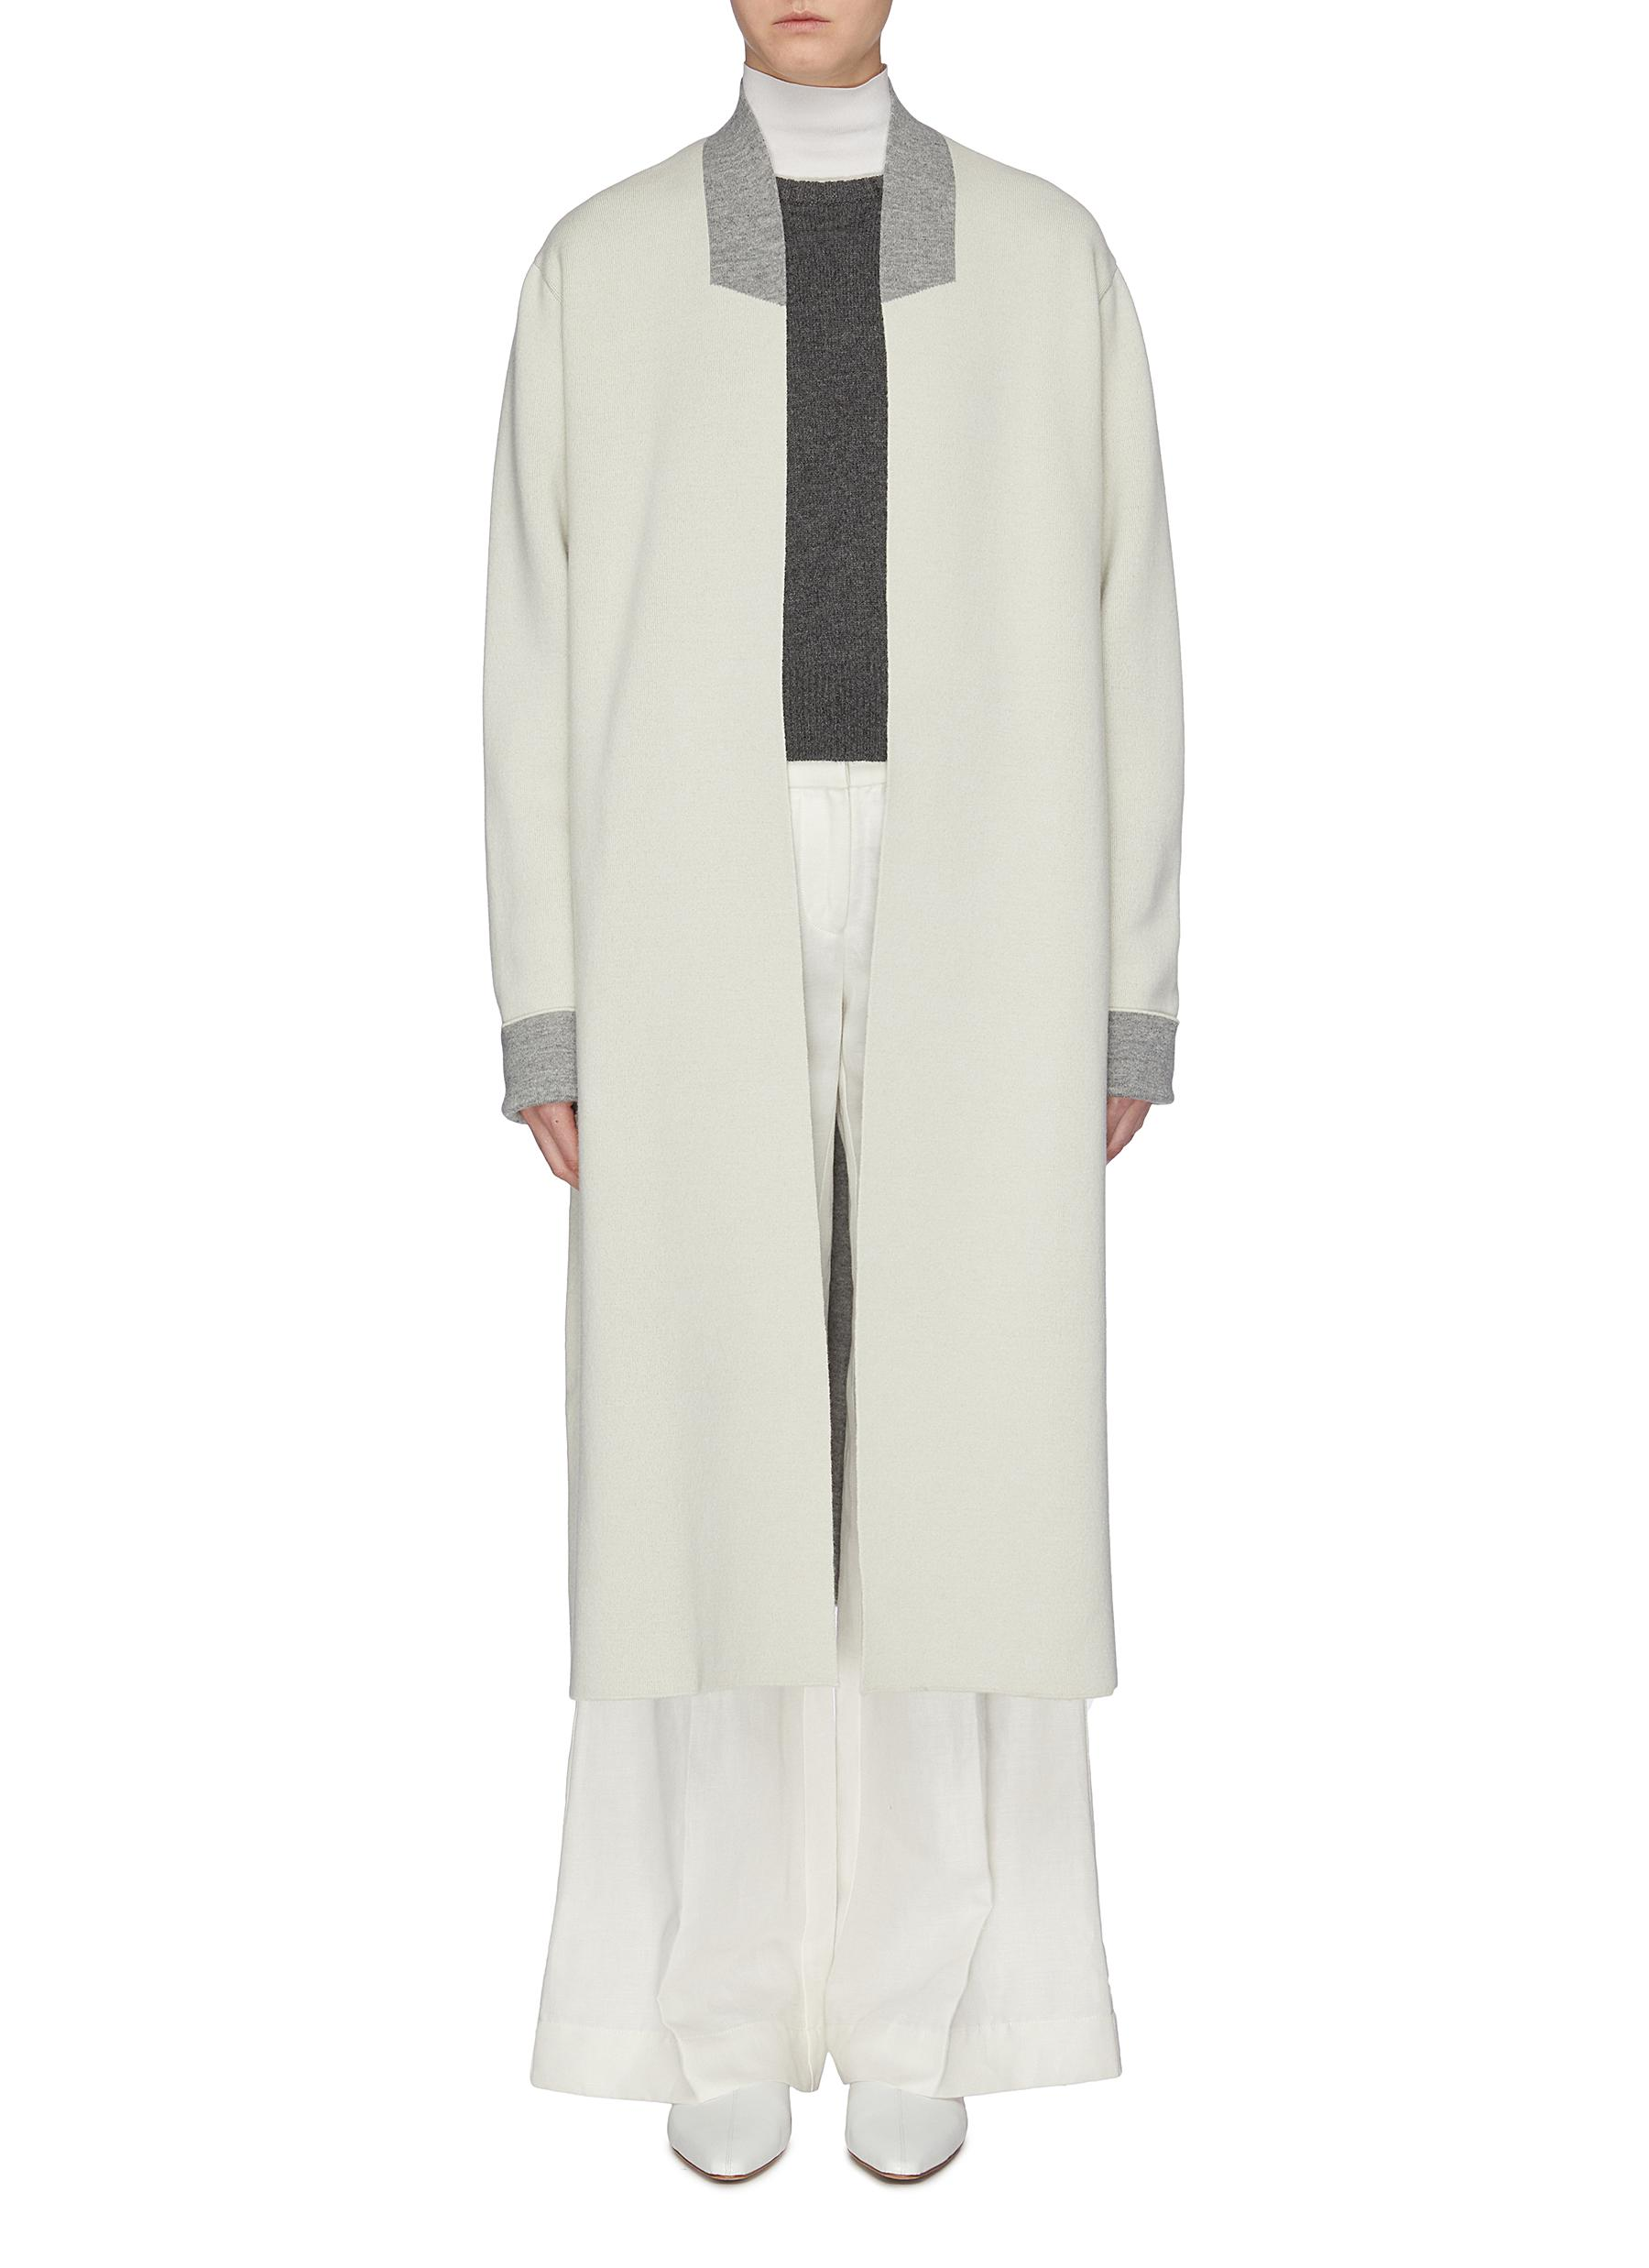 Colourblock trim wool-cashmere knit coat by Jil Sander